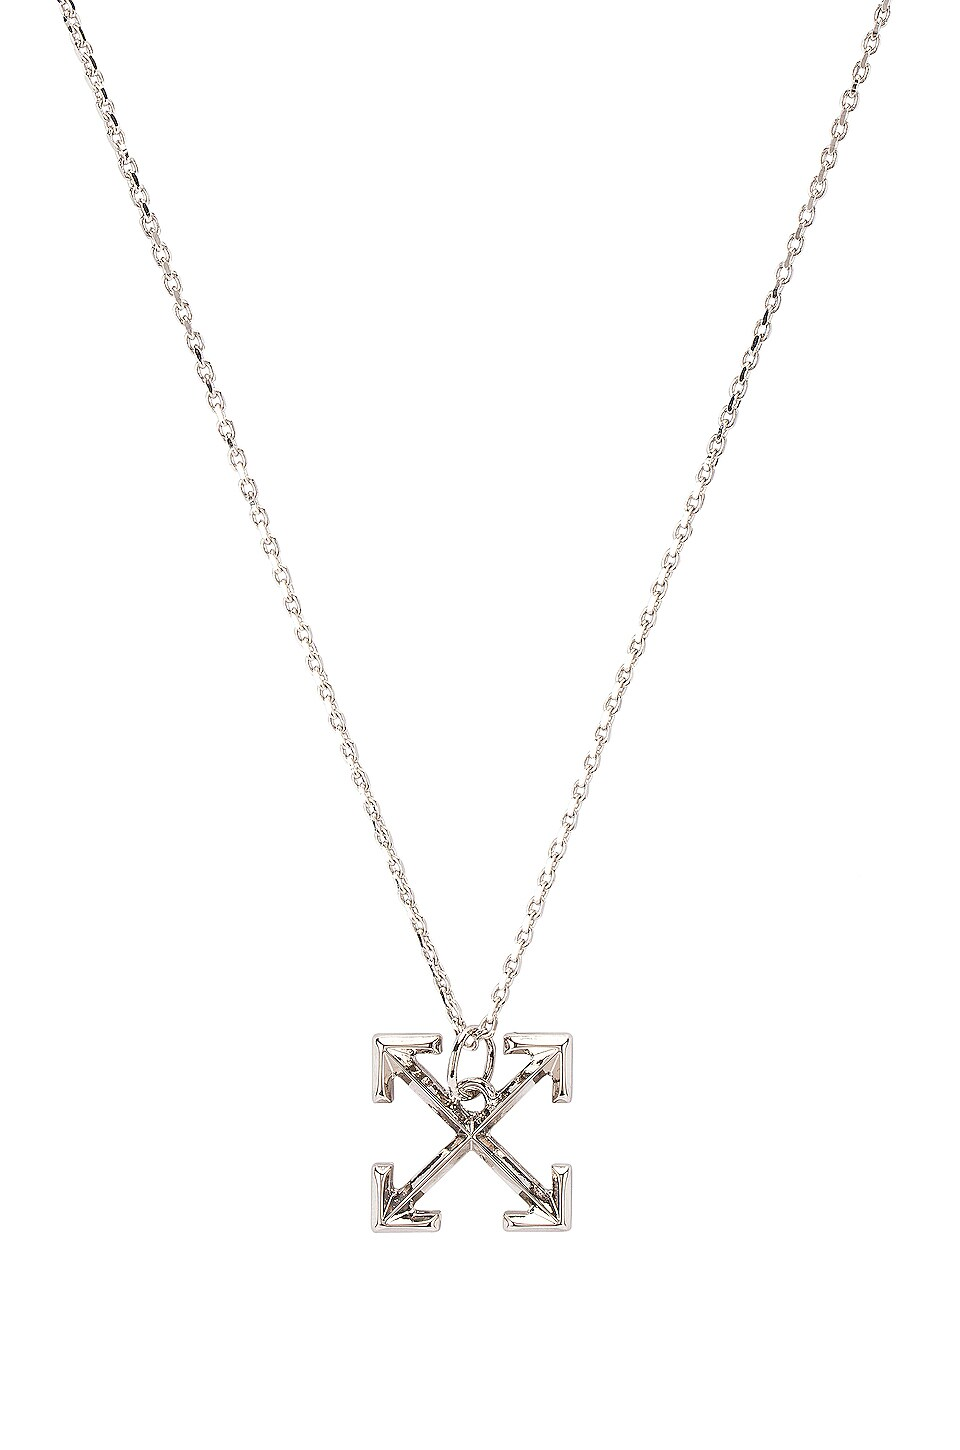 OFF-WHITE Small Arrows Necklace in Silver